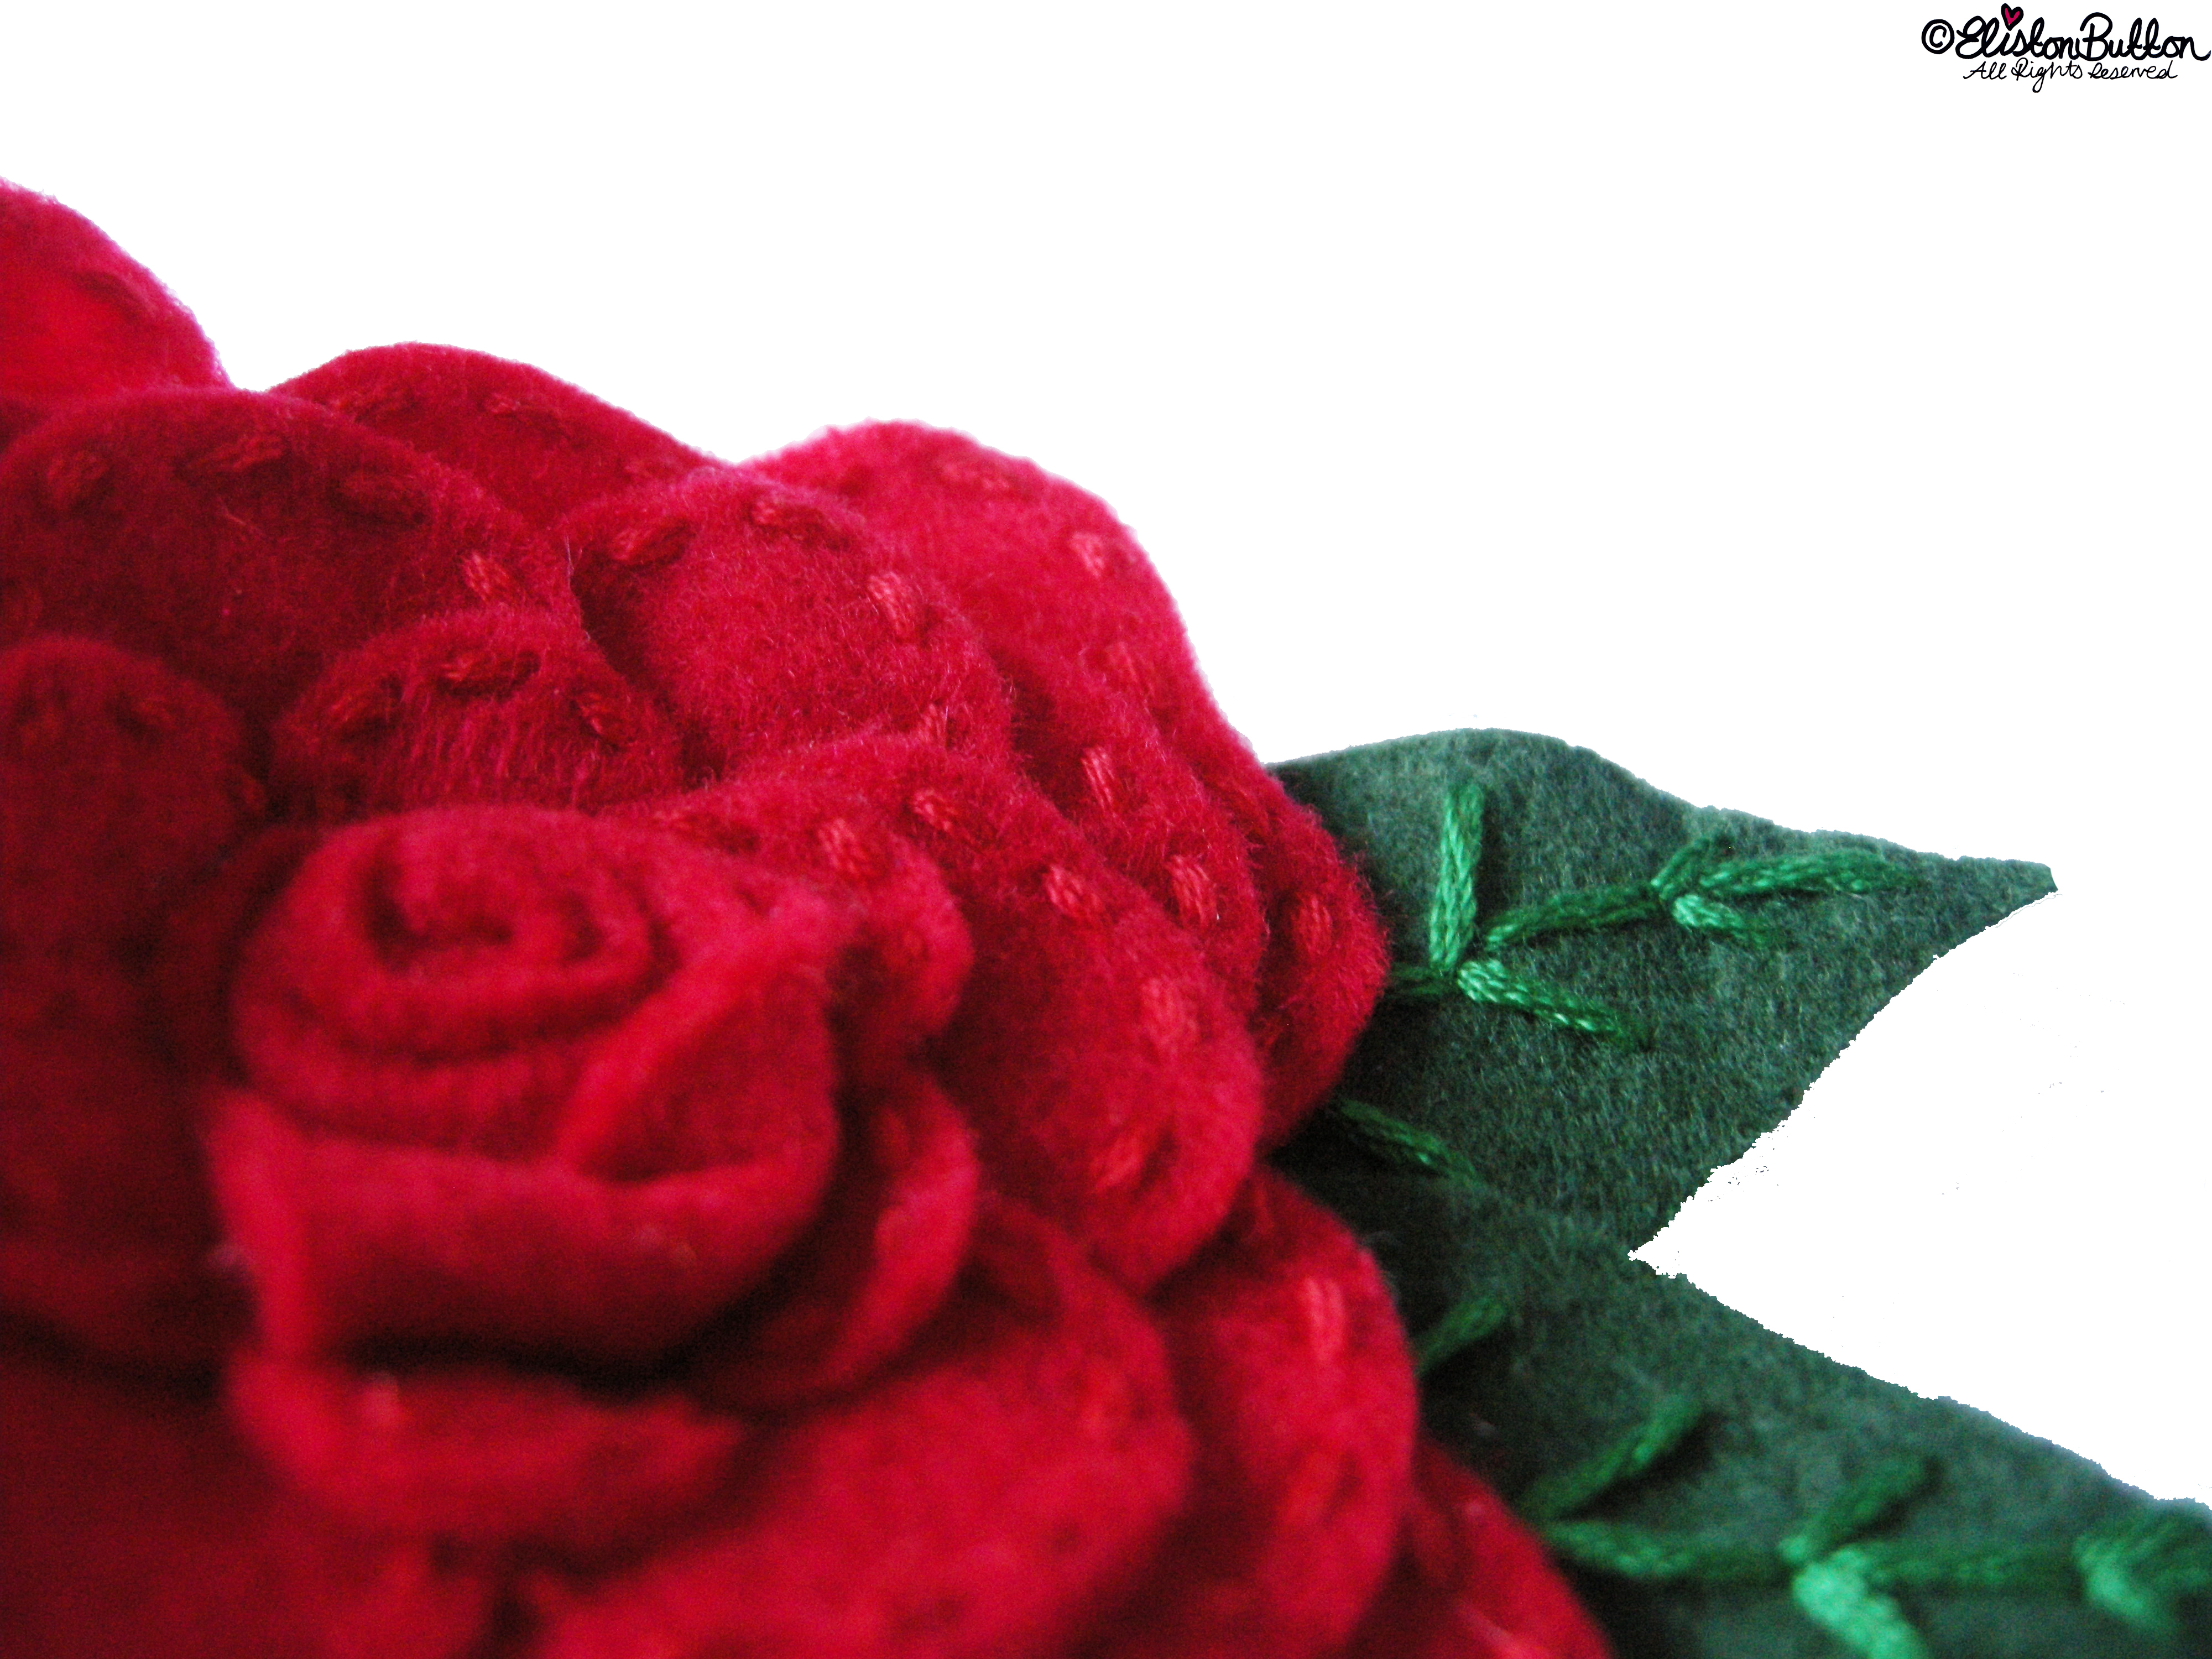 Embroidered Felt Rose Flower - Close Up - 27 Before 27 - Roses are Red at www.elistonbutton.com - Eliston Button - That Crafty Kid – Art, Design, Craft & Adventure.